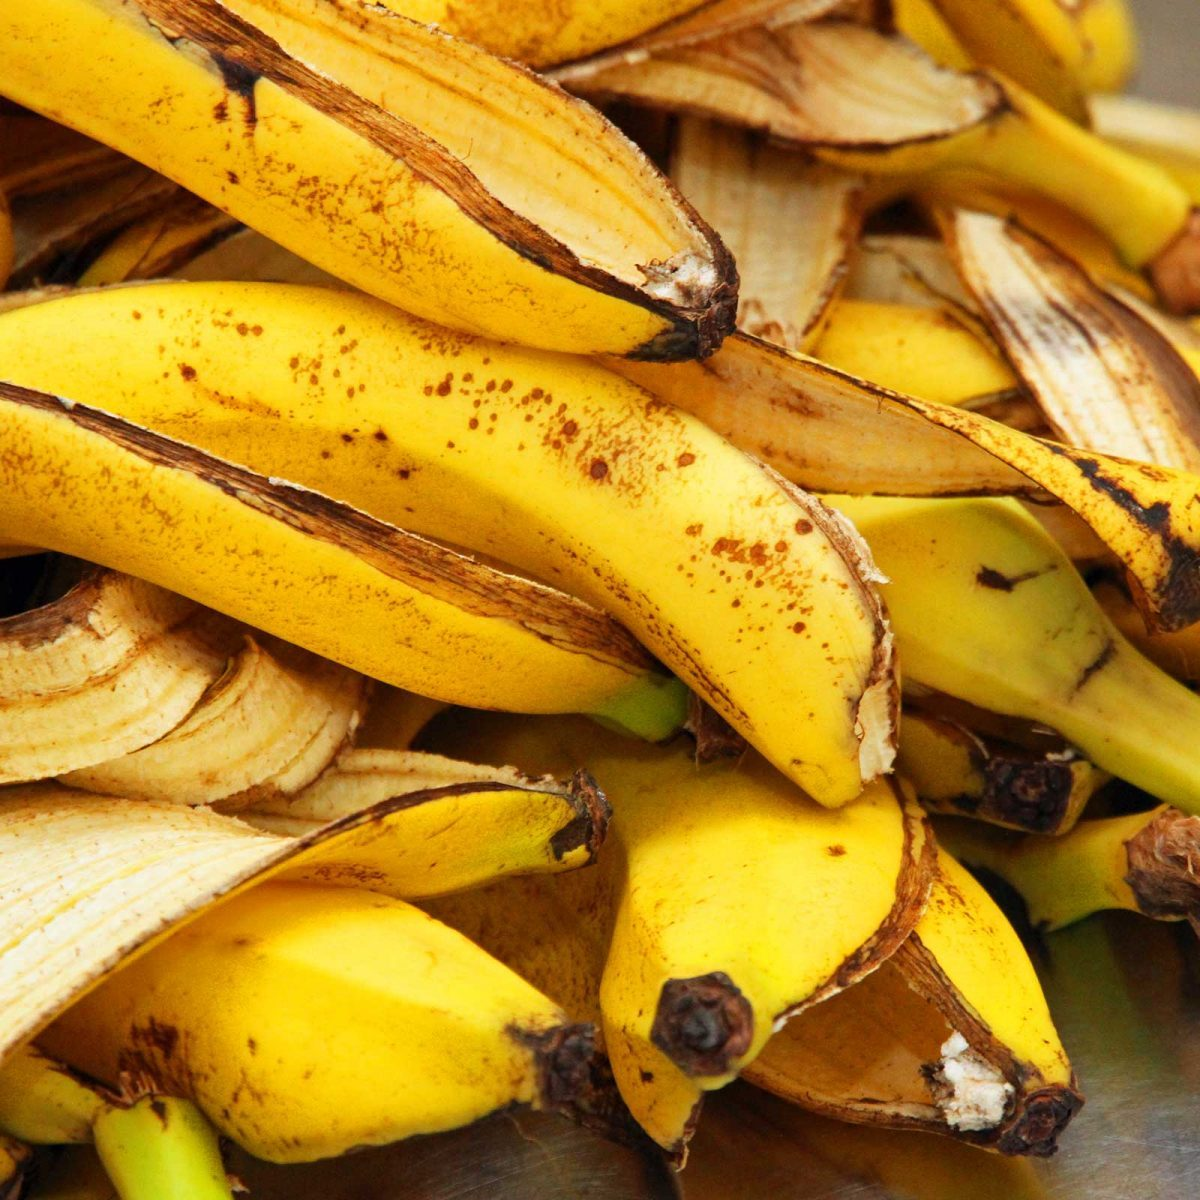 20 Surprising Uses for Bananas (Besides Eating Them)